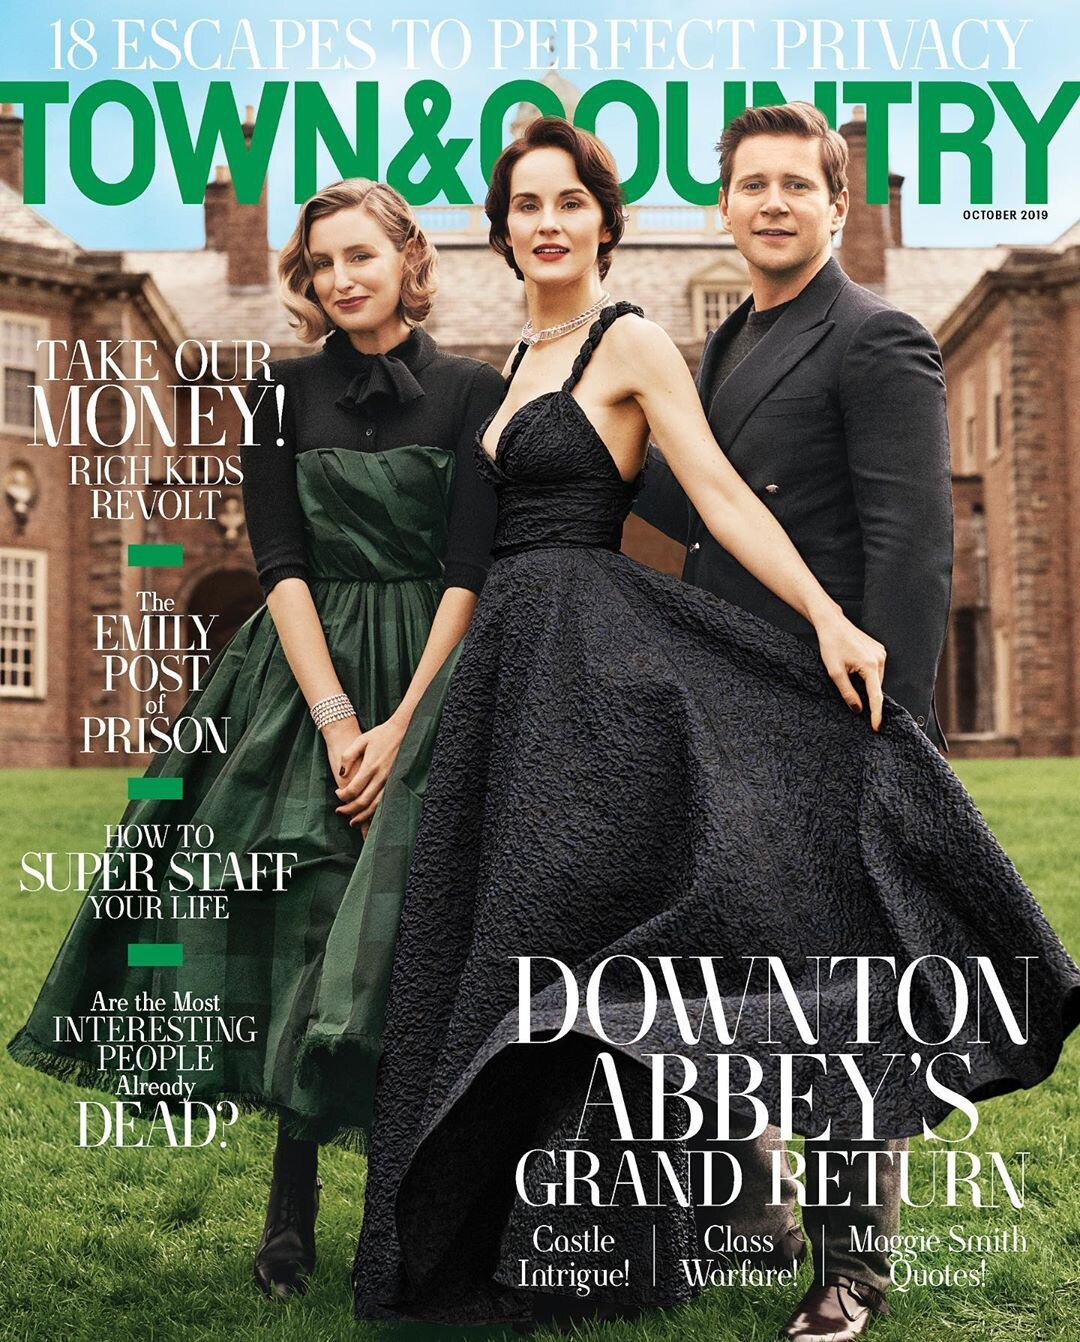 Town & Country Cover.jpg